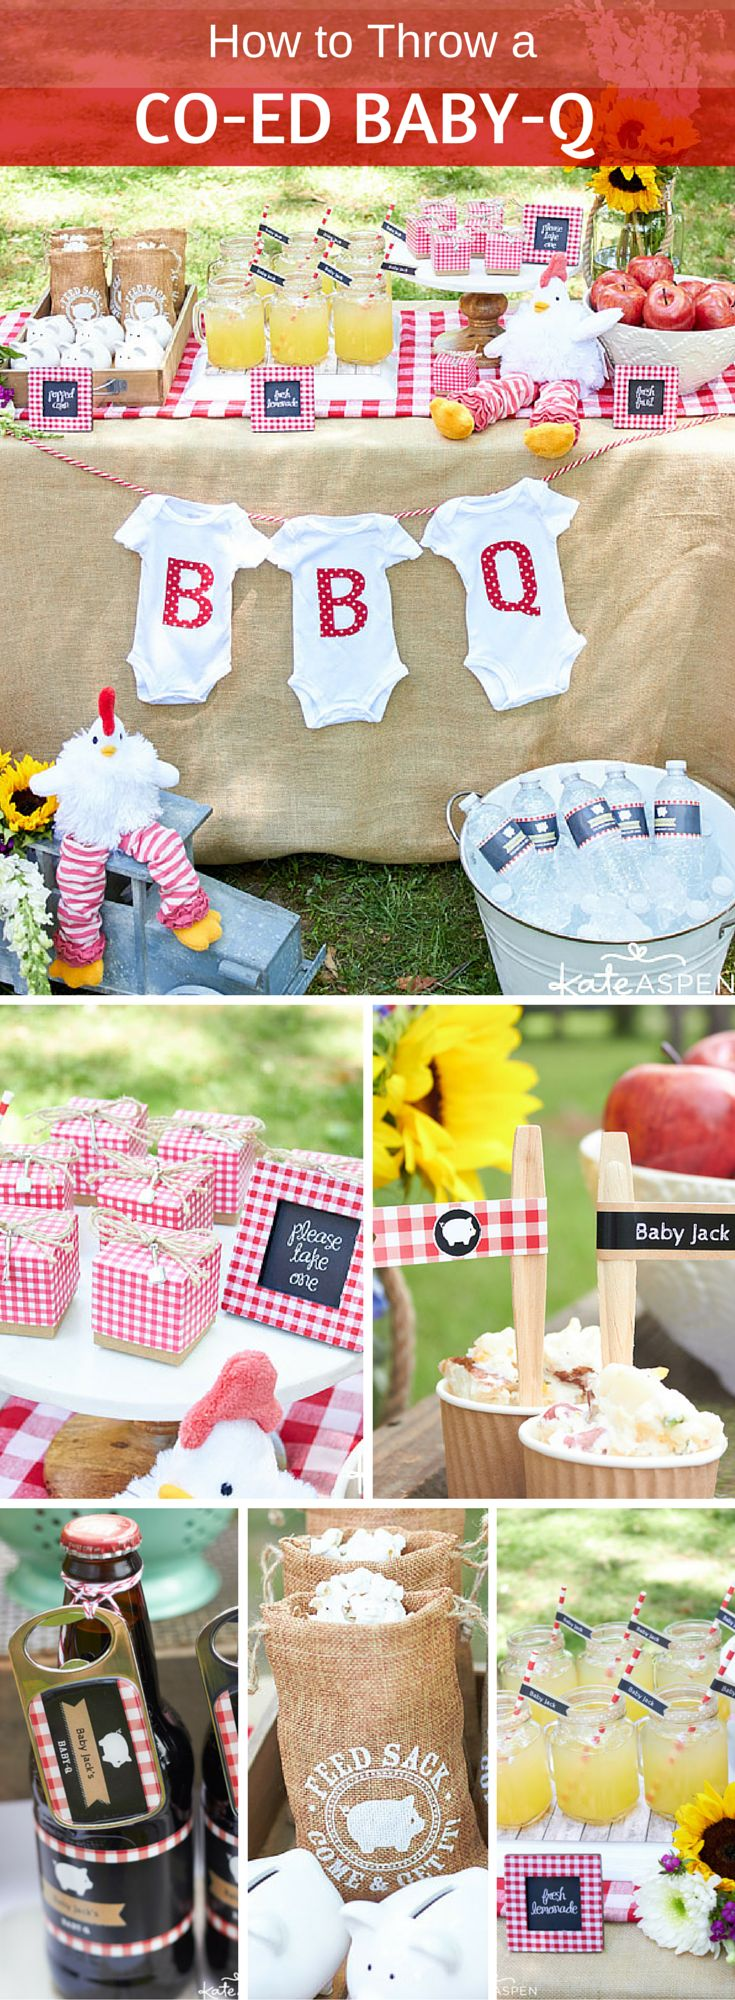 Gender neutral baby shower ideas - A Baby Q Is An Adorable Gender Neutral Baby Shower Theme And It S